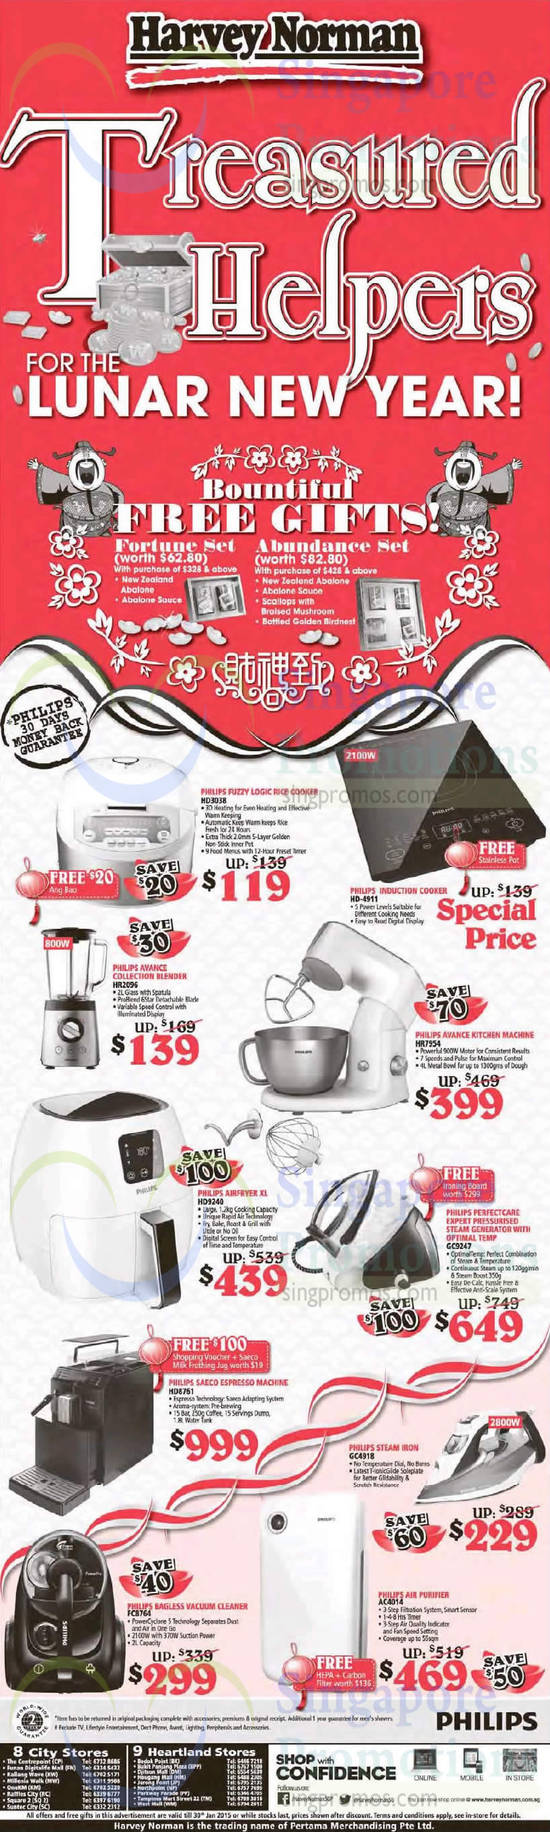 Featured image for Harvey Norman Electronics, IT, Appliances & Other Offers 24 - 30 Jan 2015